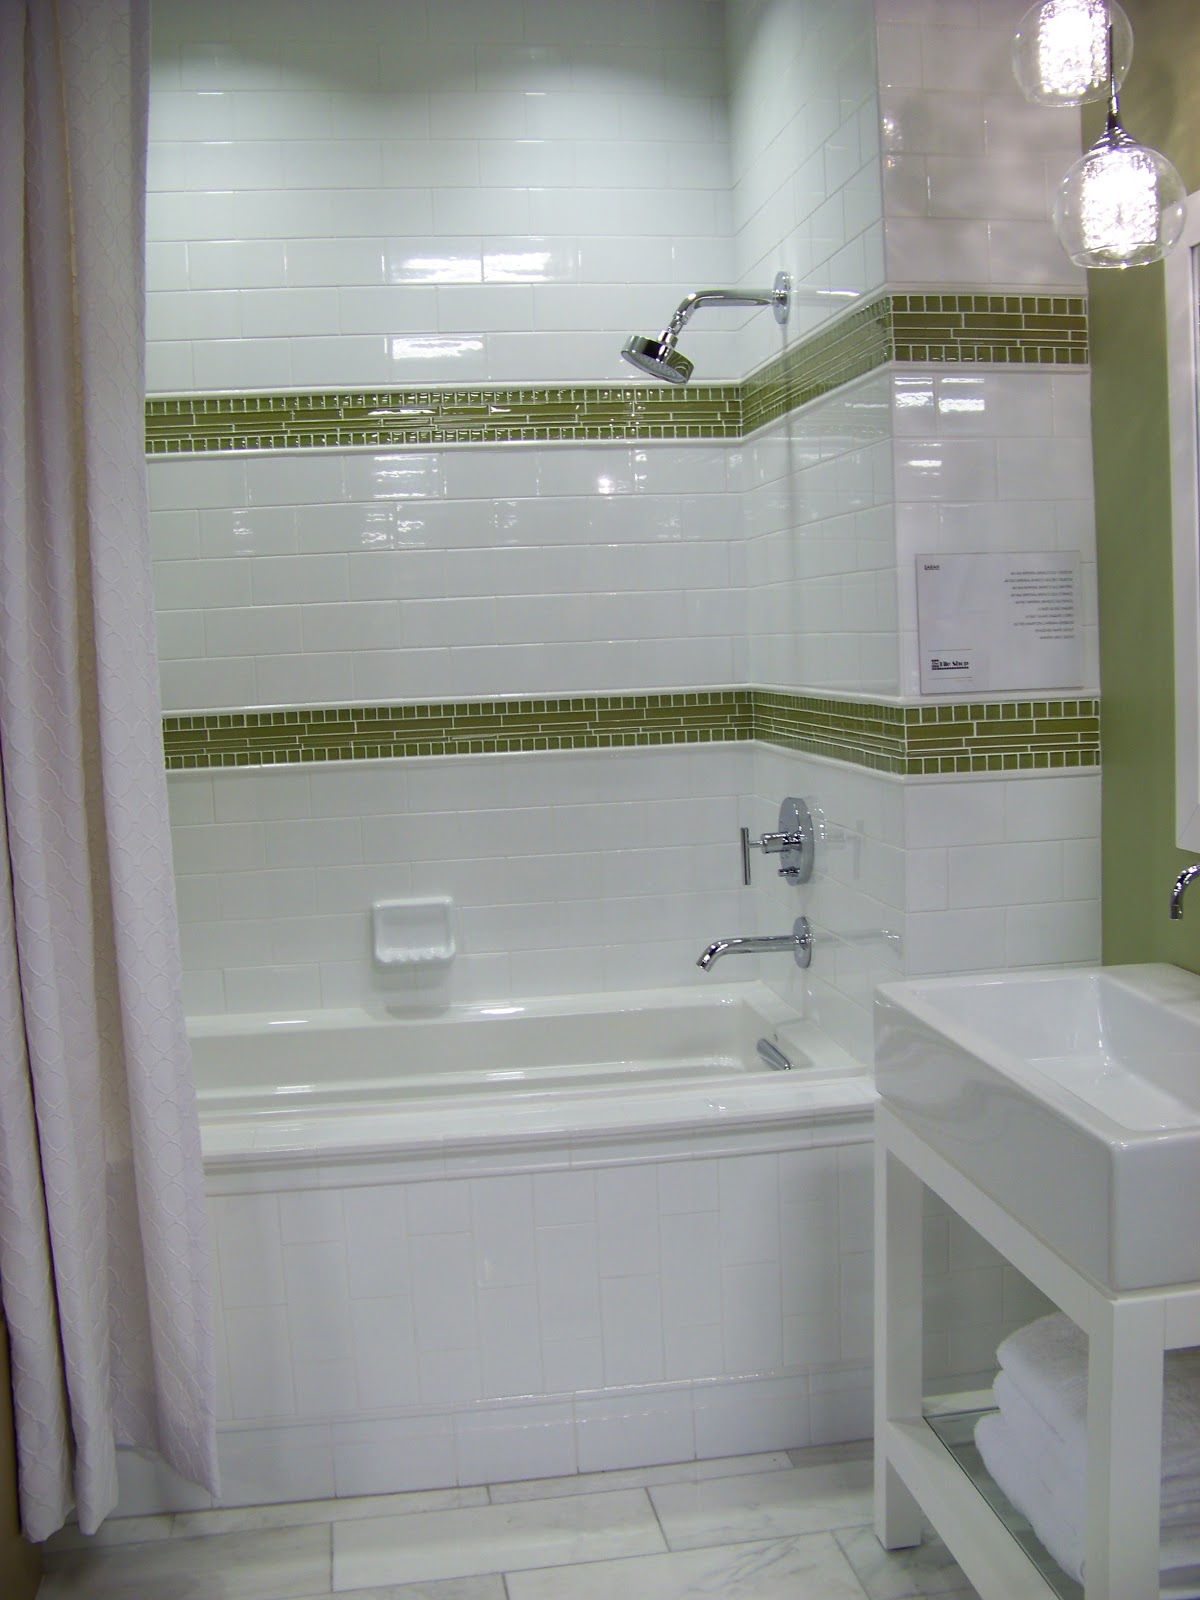 Subway tiles look really expensive when paired with glass tiles and